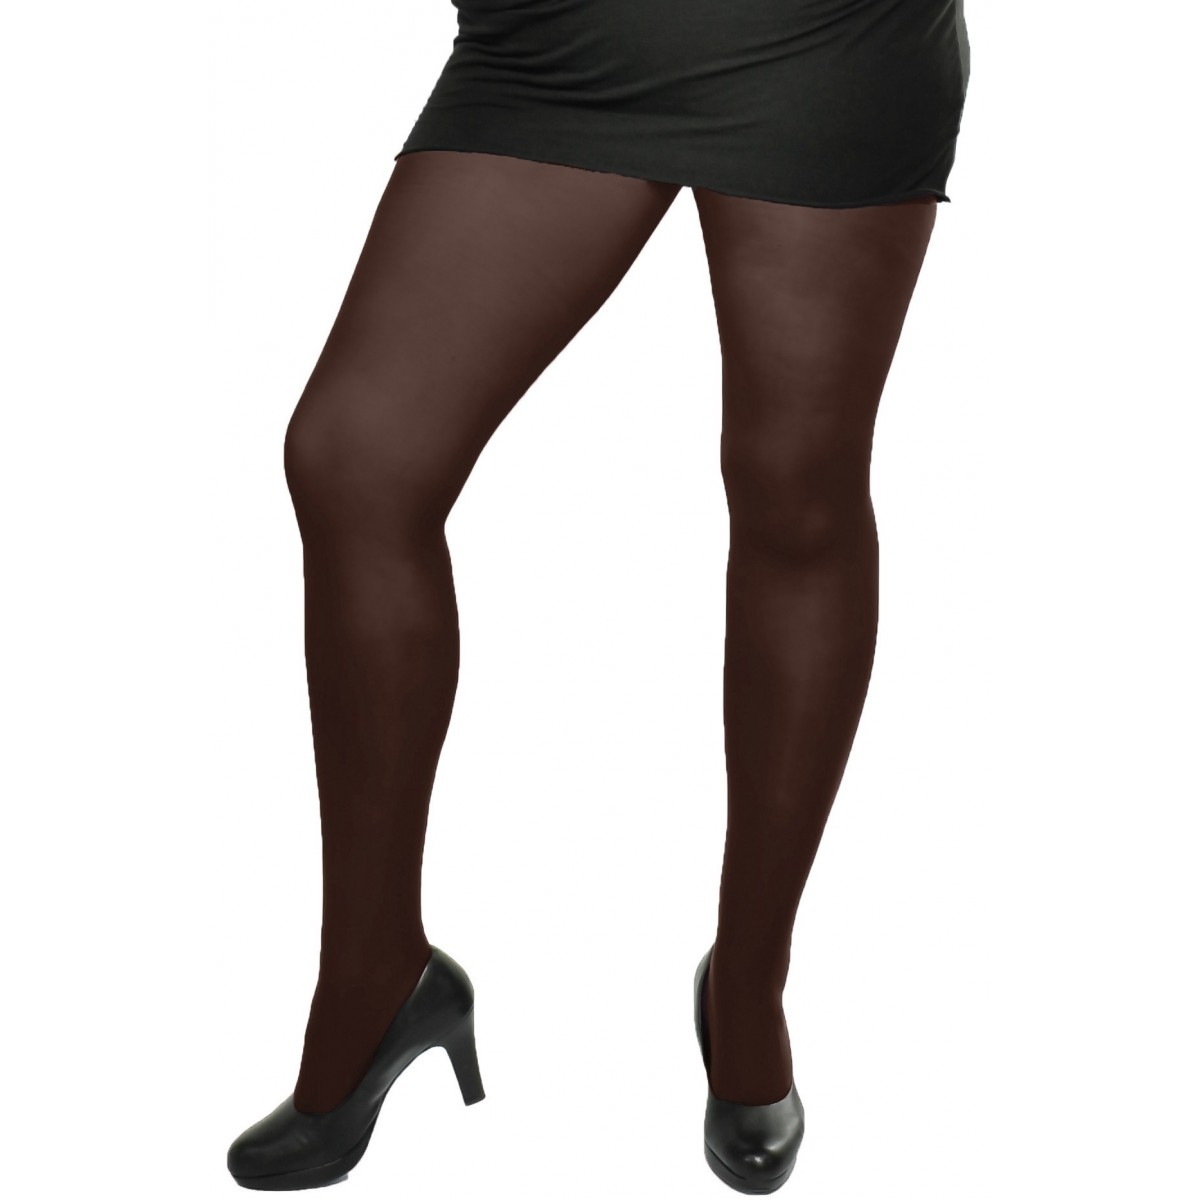 a6068a94f11 PLUS SIZE OPAQUE TIGHTS 60 DEN - 2 PACK - Hosiery - Plus Size ...